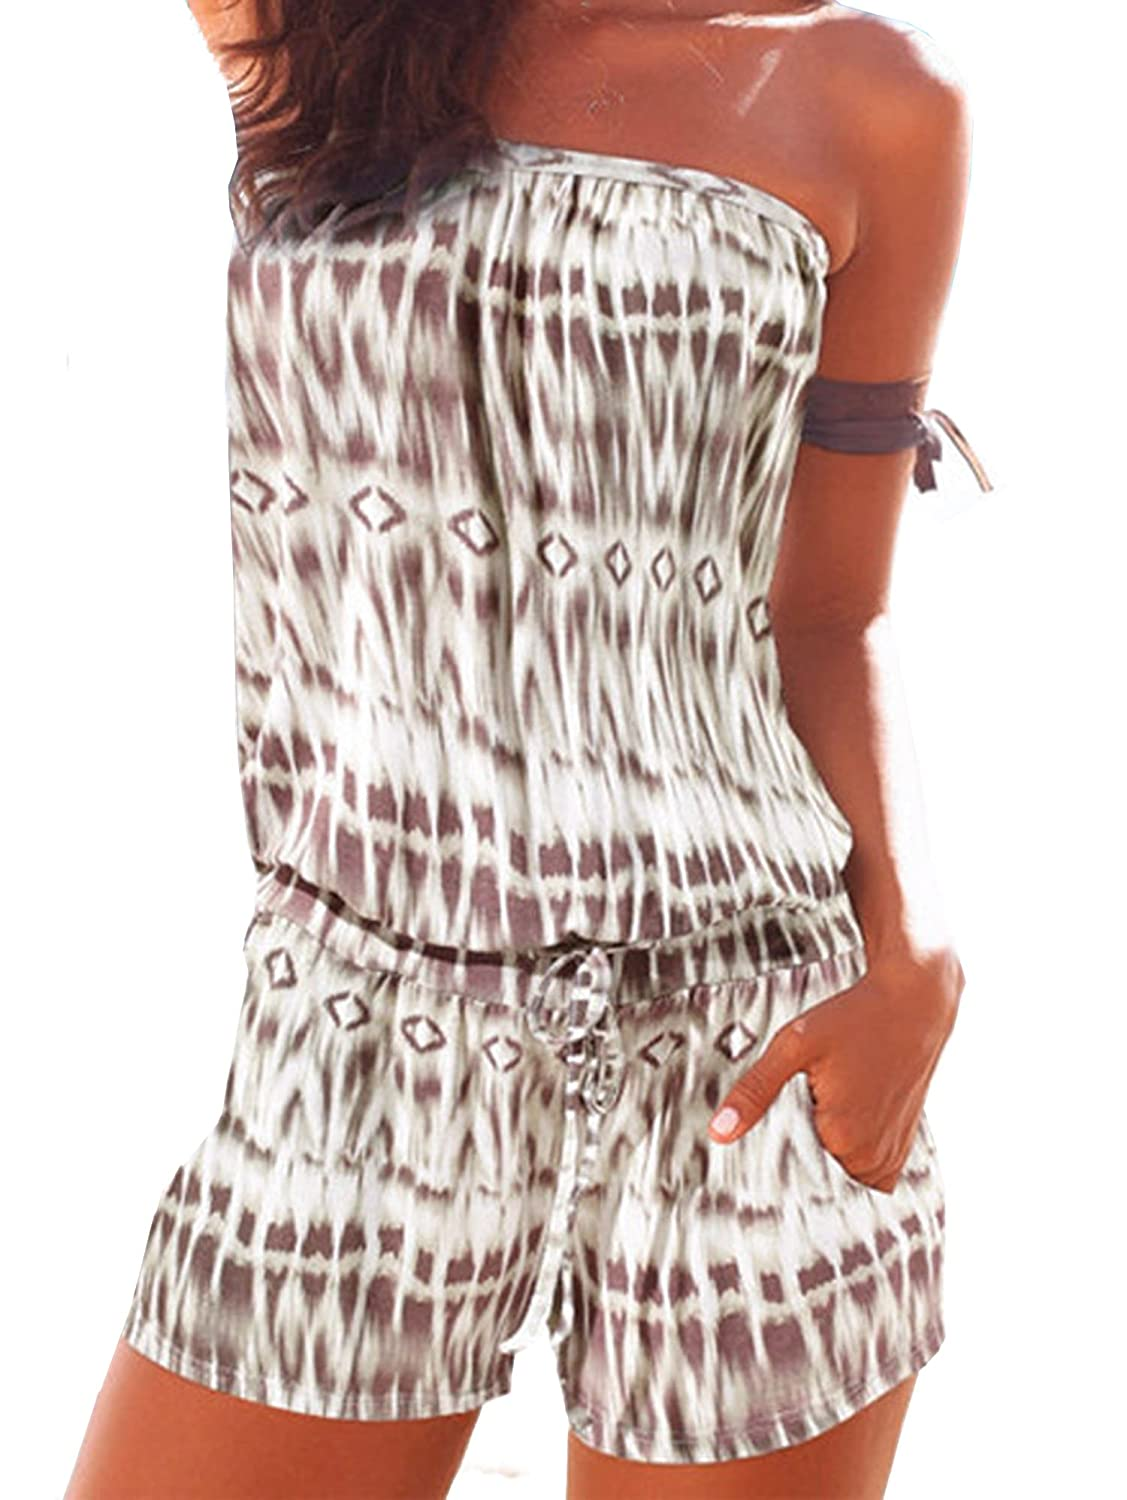 Elevesee Women/'s Rompers Off Shoulder Floral Print Strapless Shorts Casual Mini Summer Beach Jumpsuit